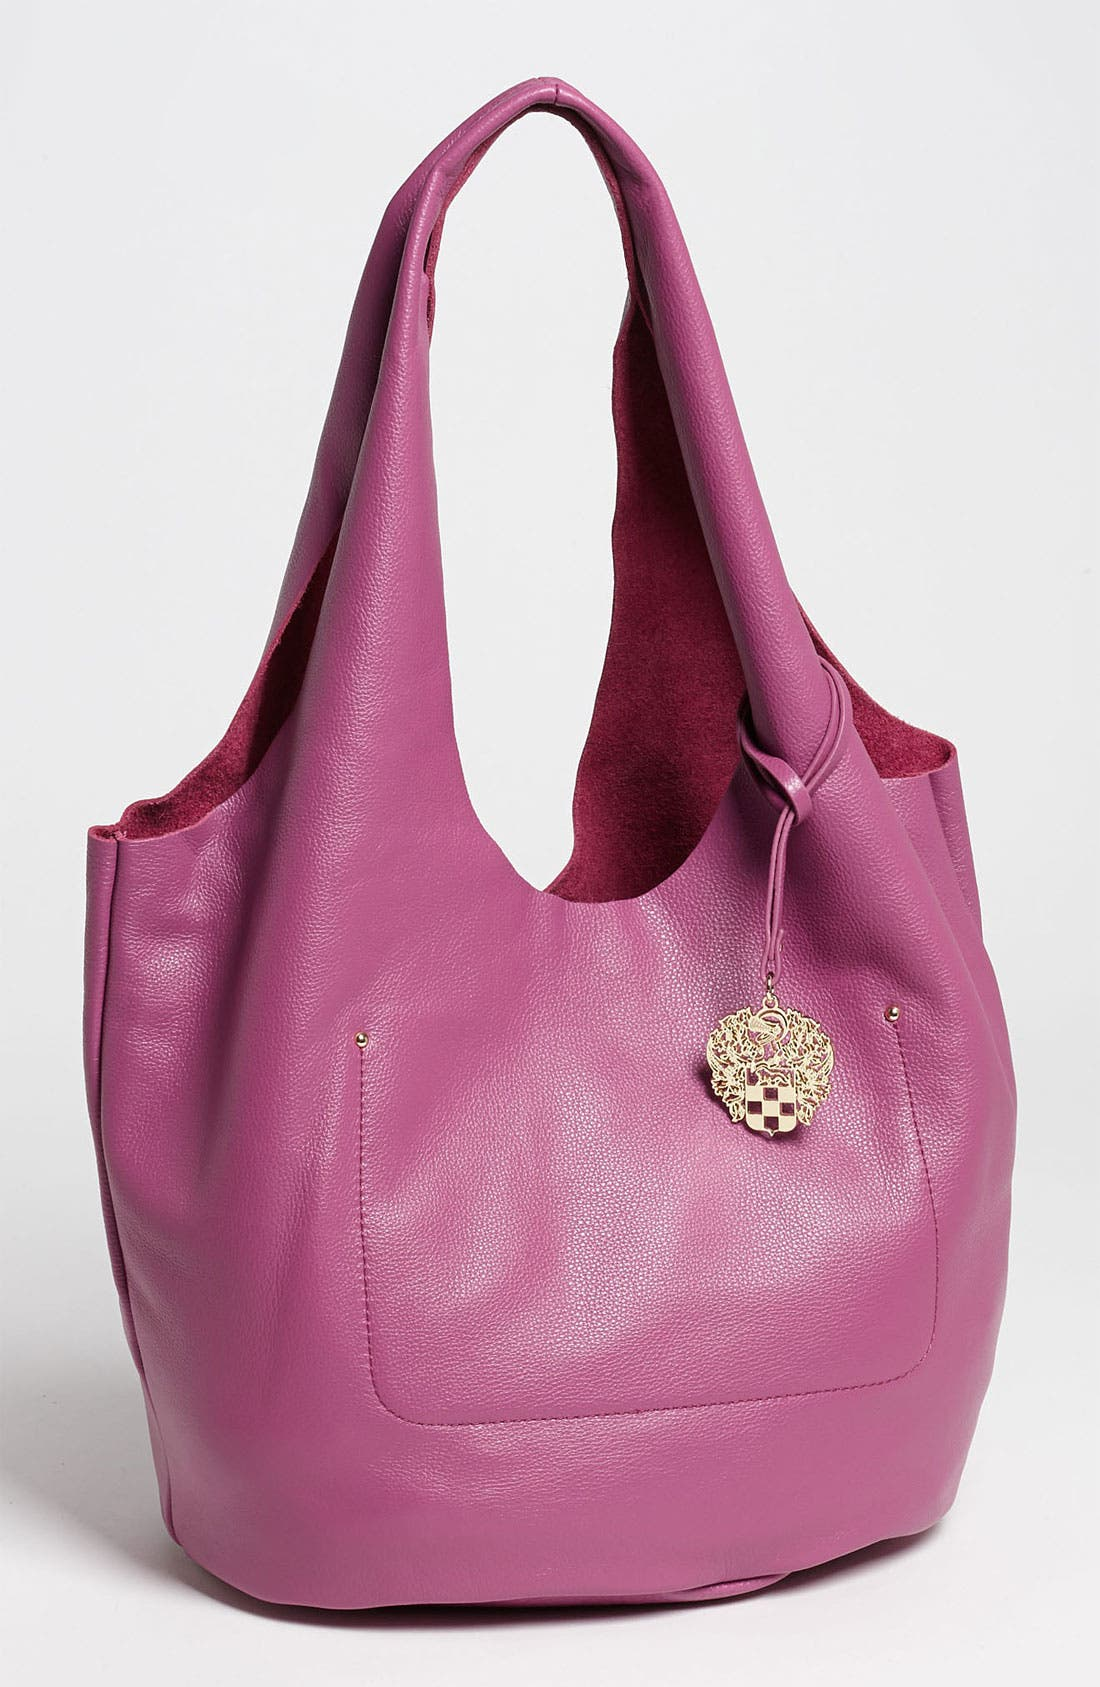 Main Image - Vince Camuto 'Wow' Tote